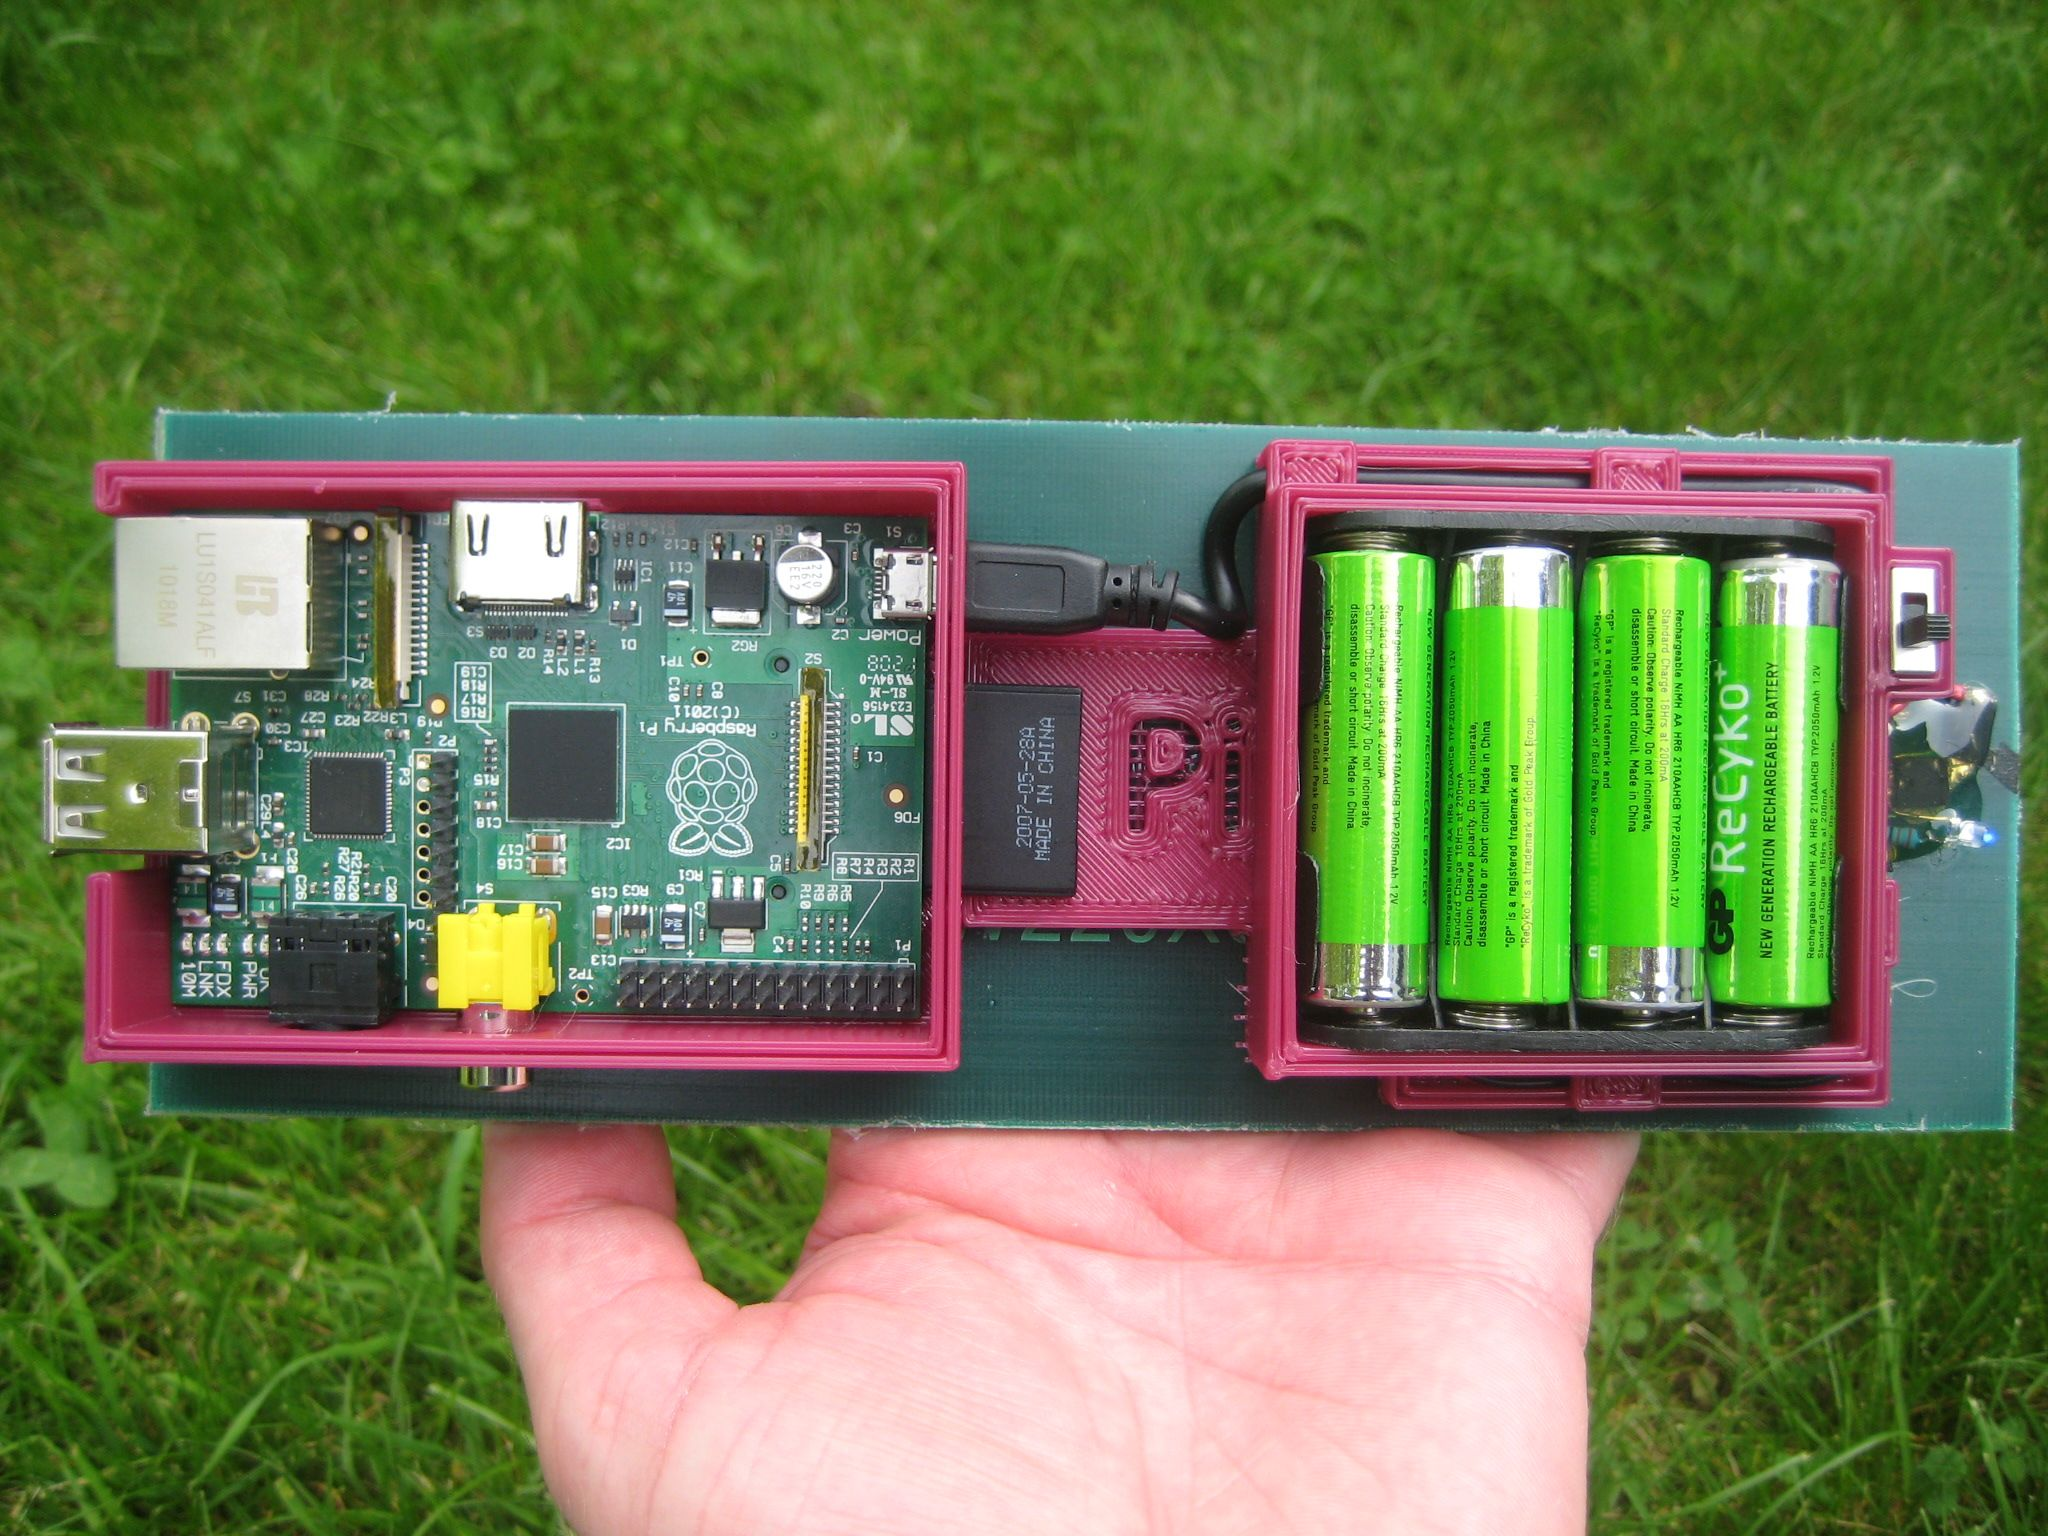 16 Amazing Things You Can Do With A Raspberry Pi Gadz Geek Blog Circuit Board Picture Frames Clock These Are Awesome For Geeky Why Not Use The Solar Battery Cells Propepsed By Cottonpickers To Make This Weather Station Autonomous